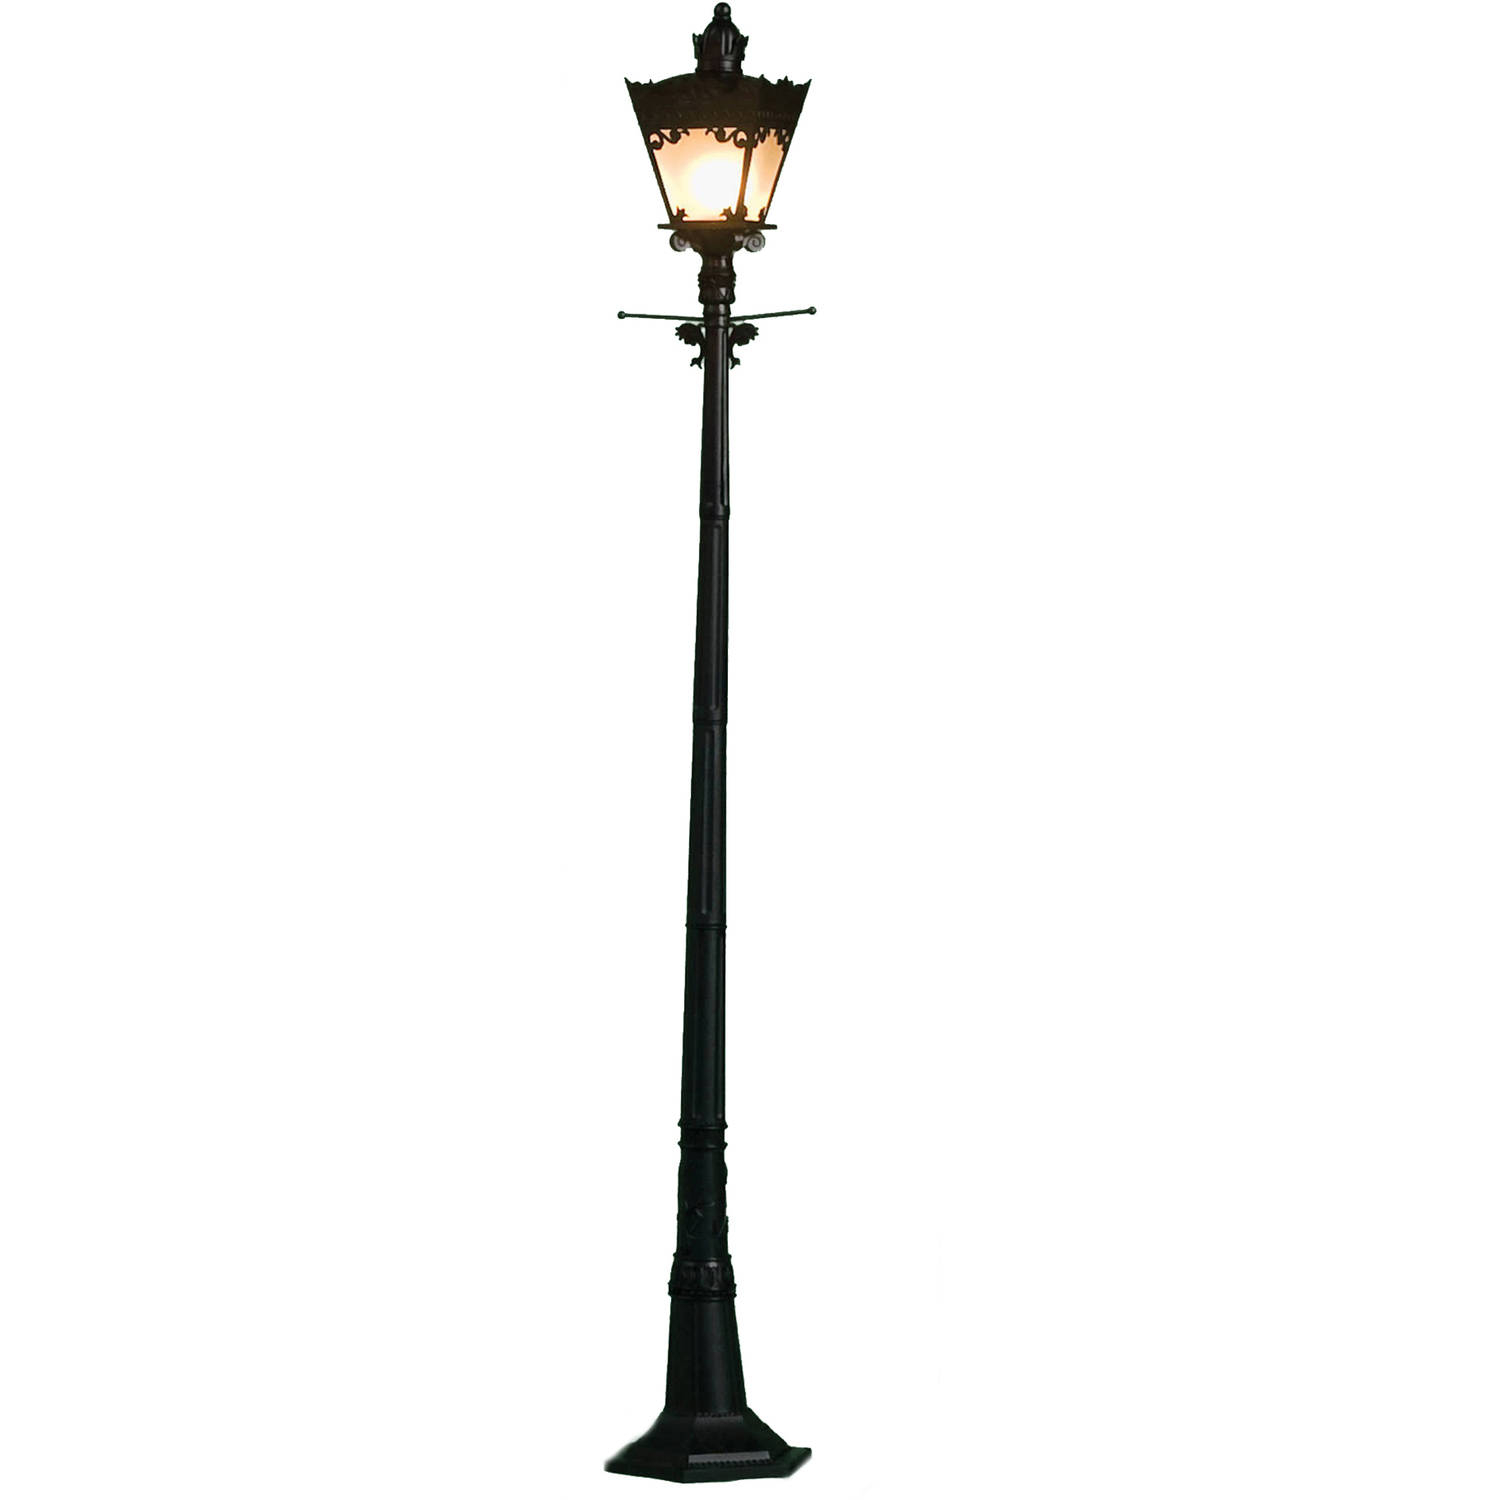 Indoor lamp post 4